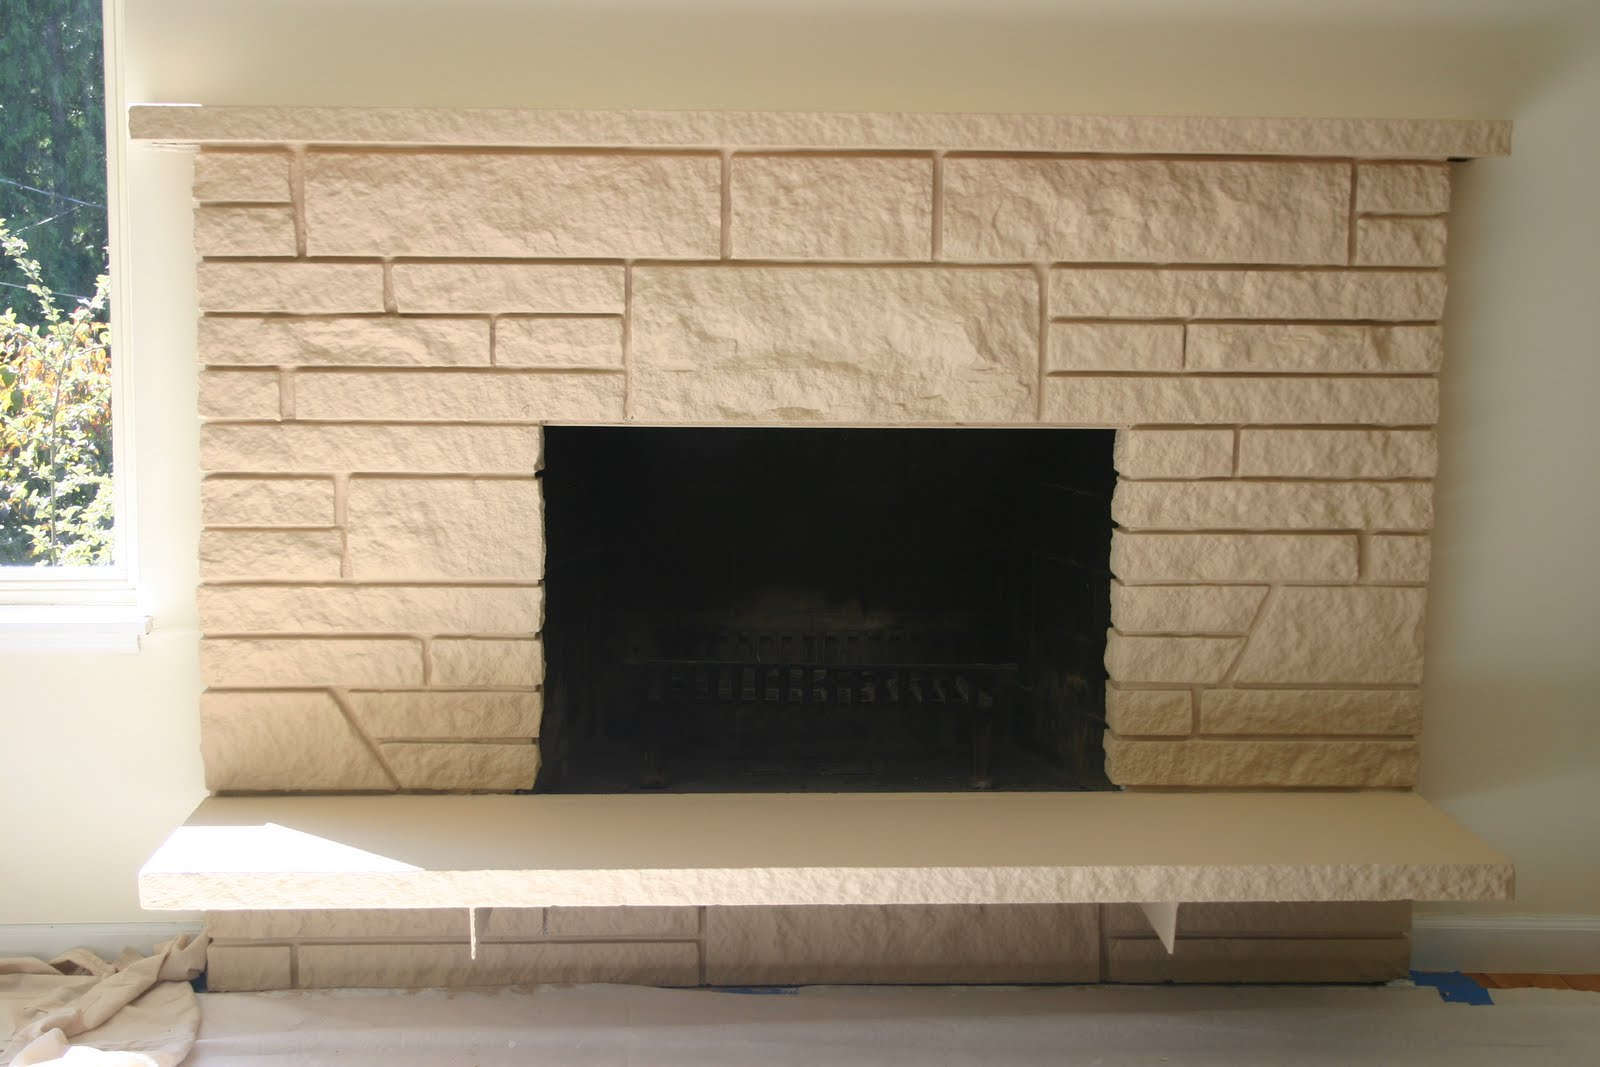 Have an ugly painted fireplace? You can fix it